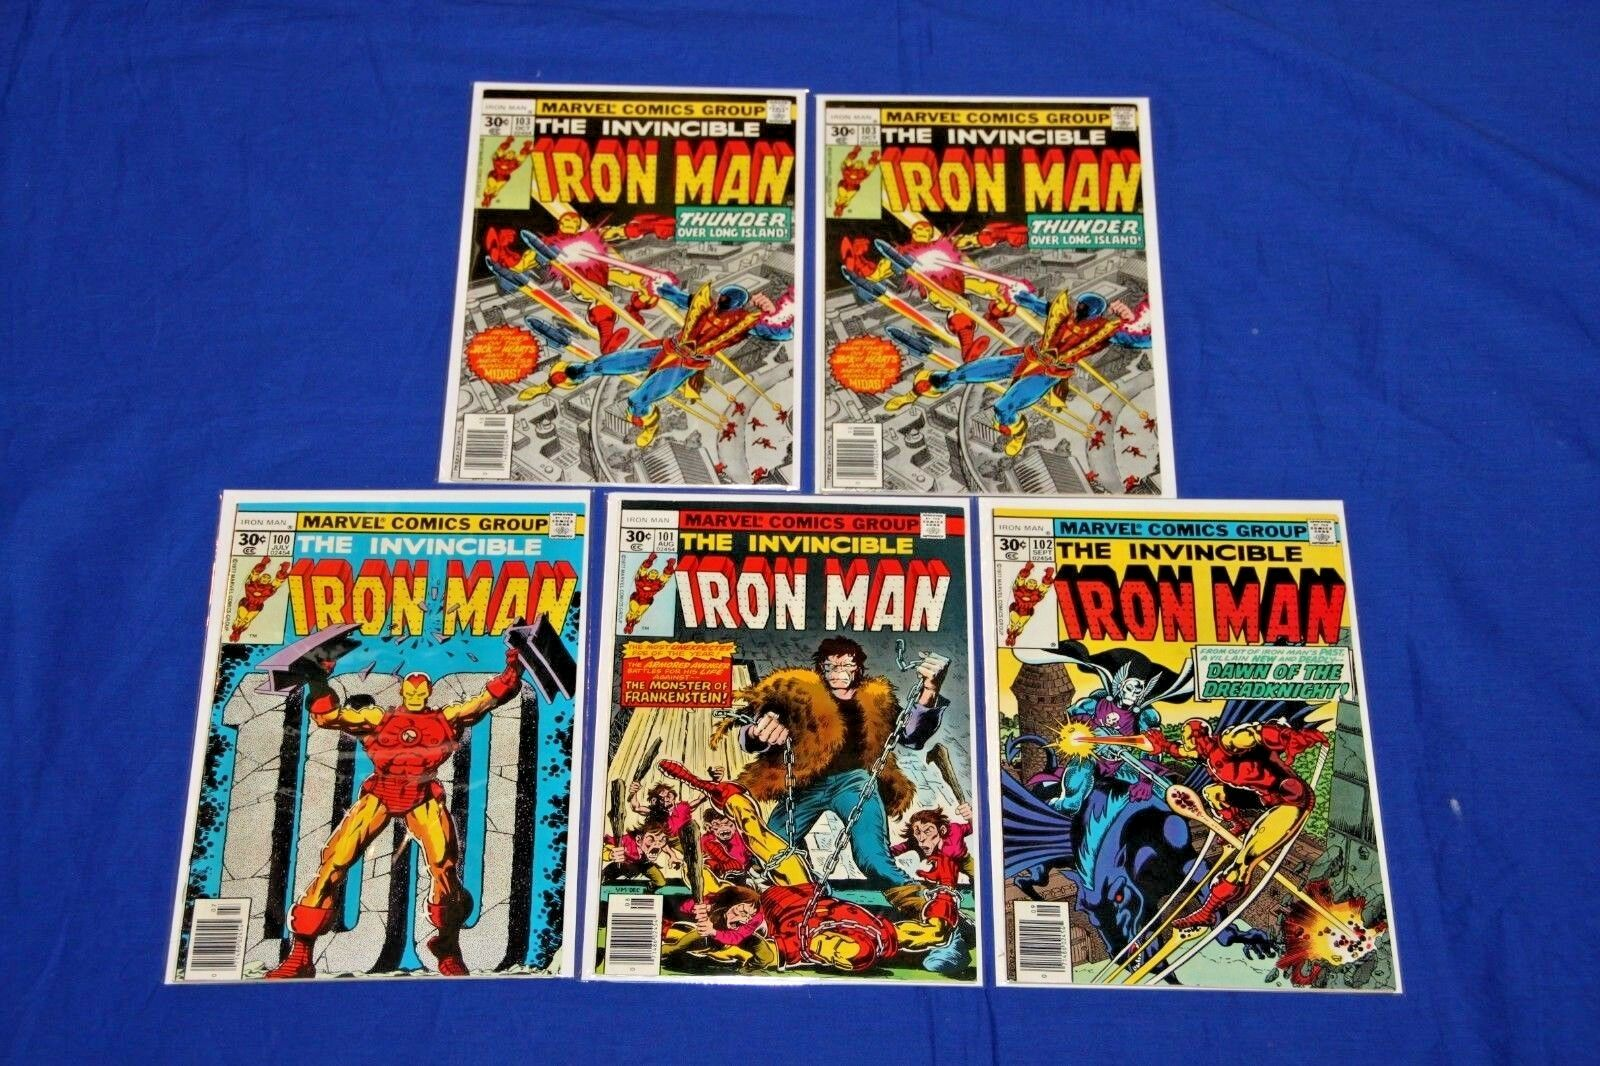 Iron Man Lot of 5 Comics #100,101,102,103,103 Complete Run High Grade Key NM